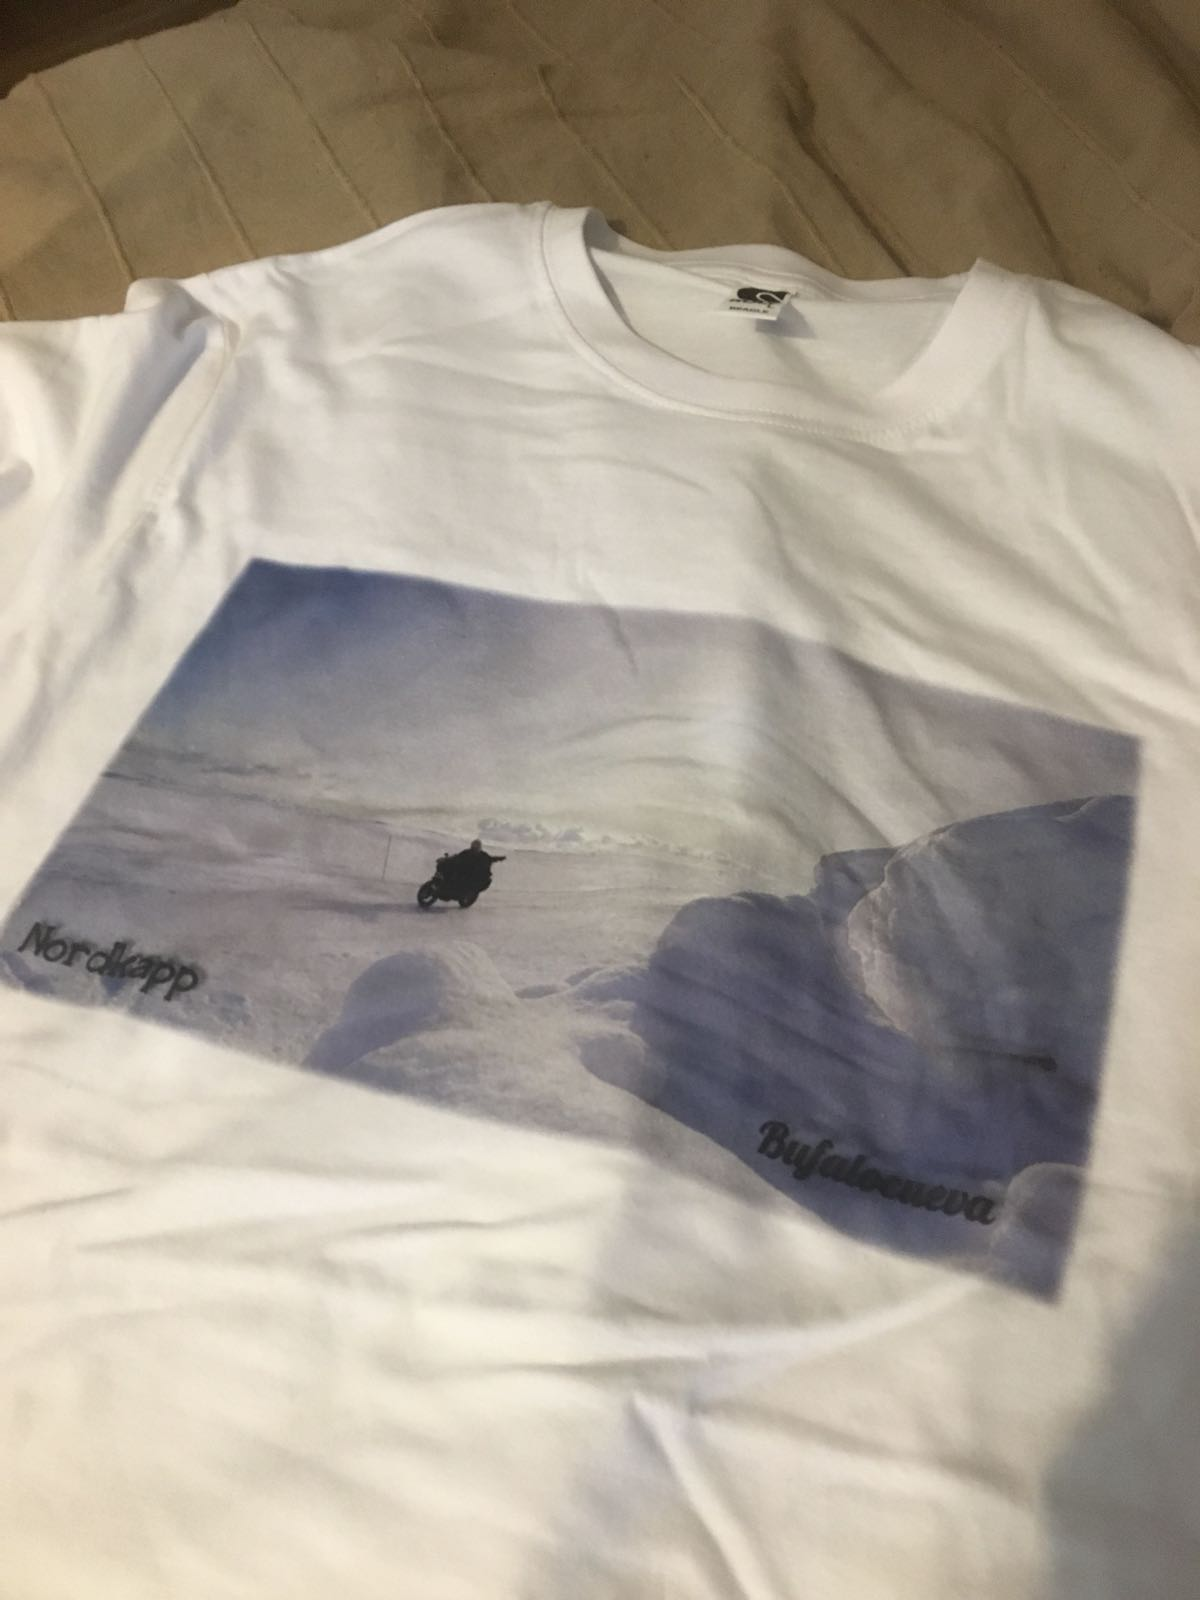 Camiseta exclusiva Nordkapp